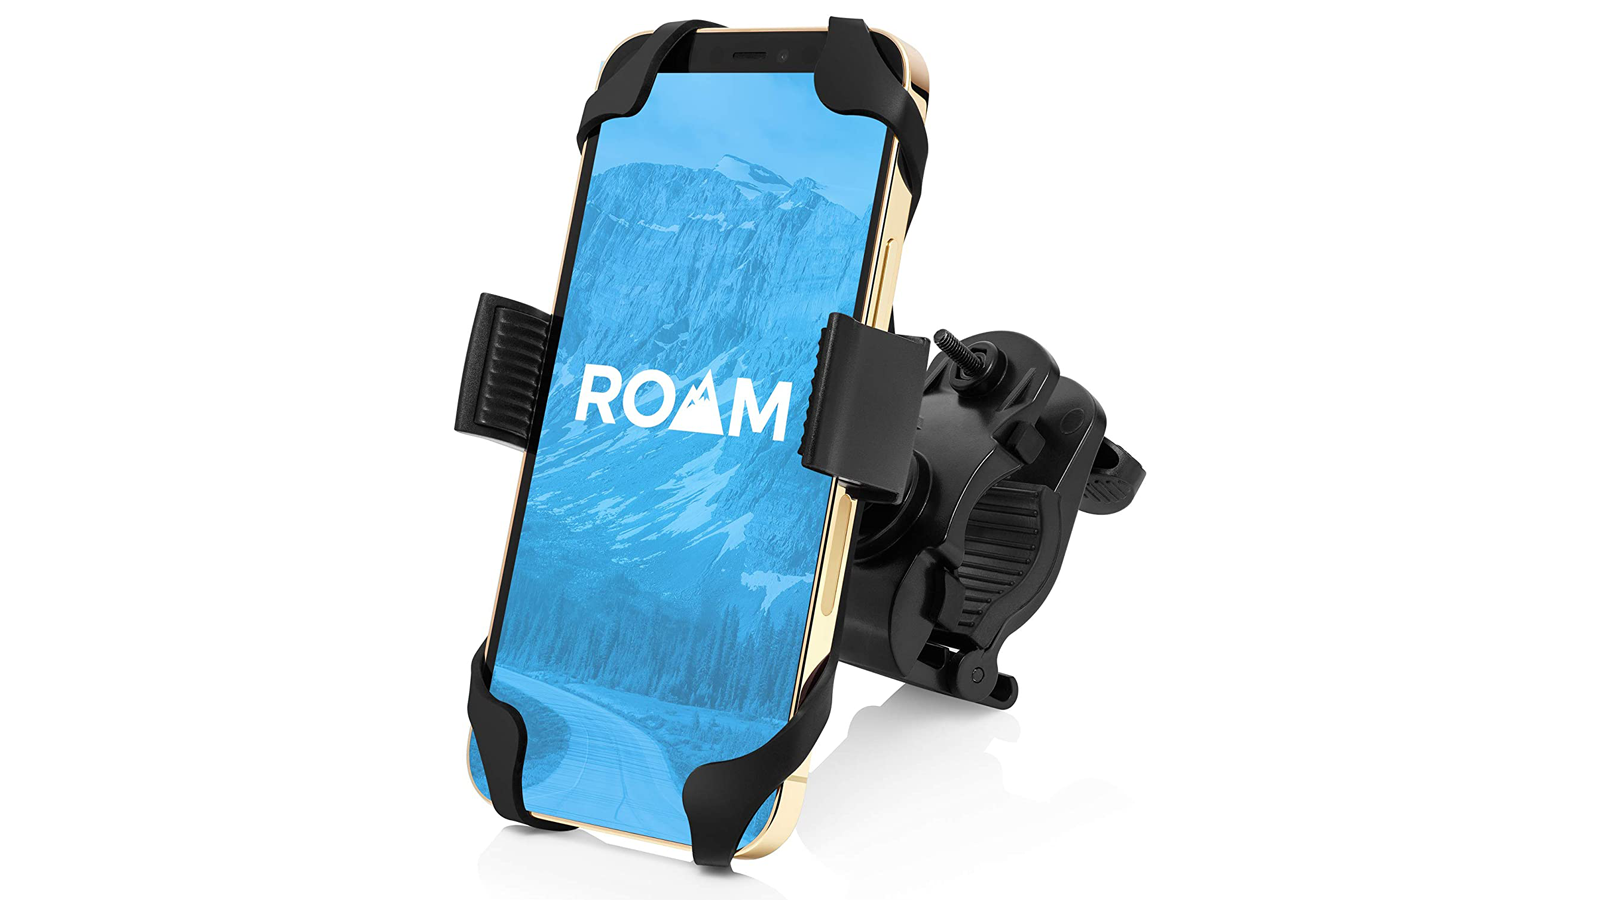 Easily View Your Phone While You Bike With This Universal Phone Mount